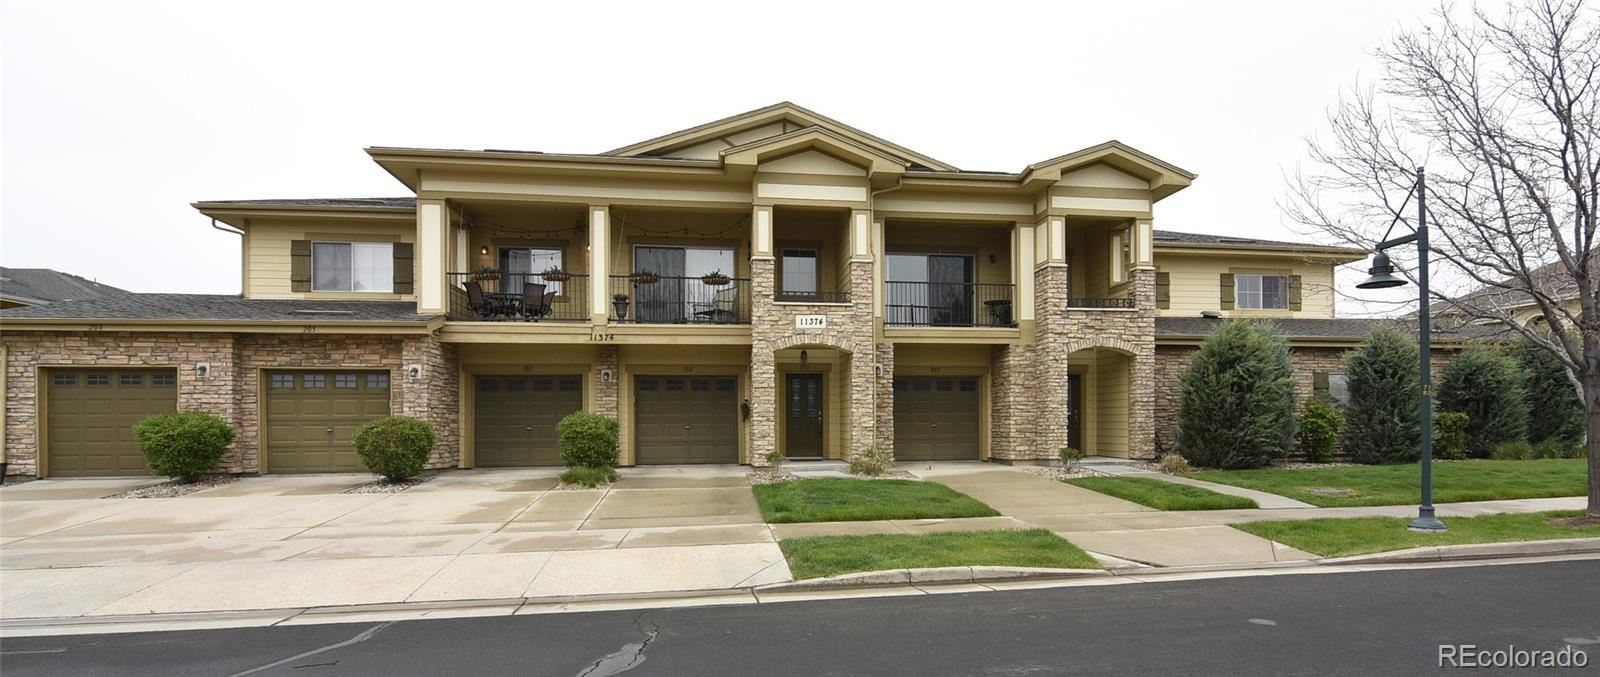 11374  Xavier Drive  203 #203, Westminster, CO 80031 - #: 6094144